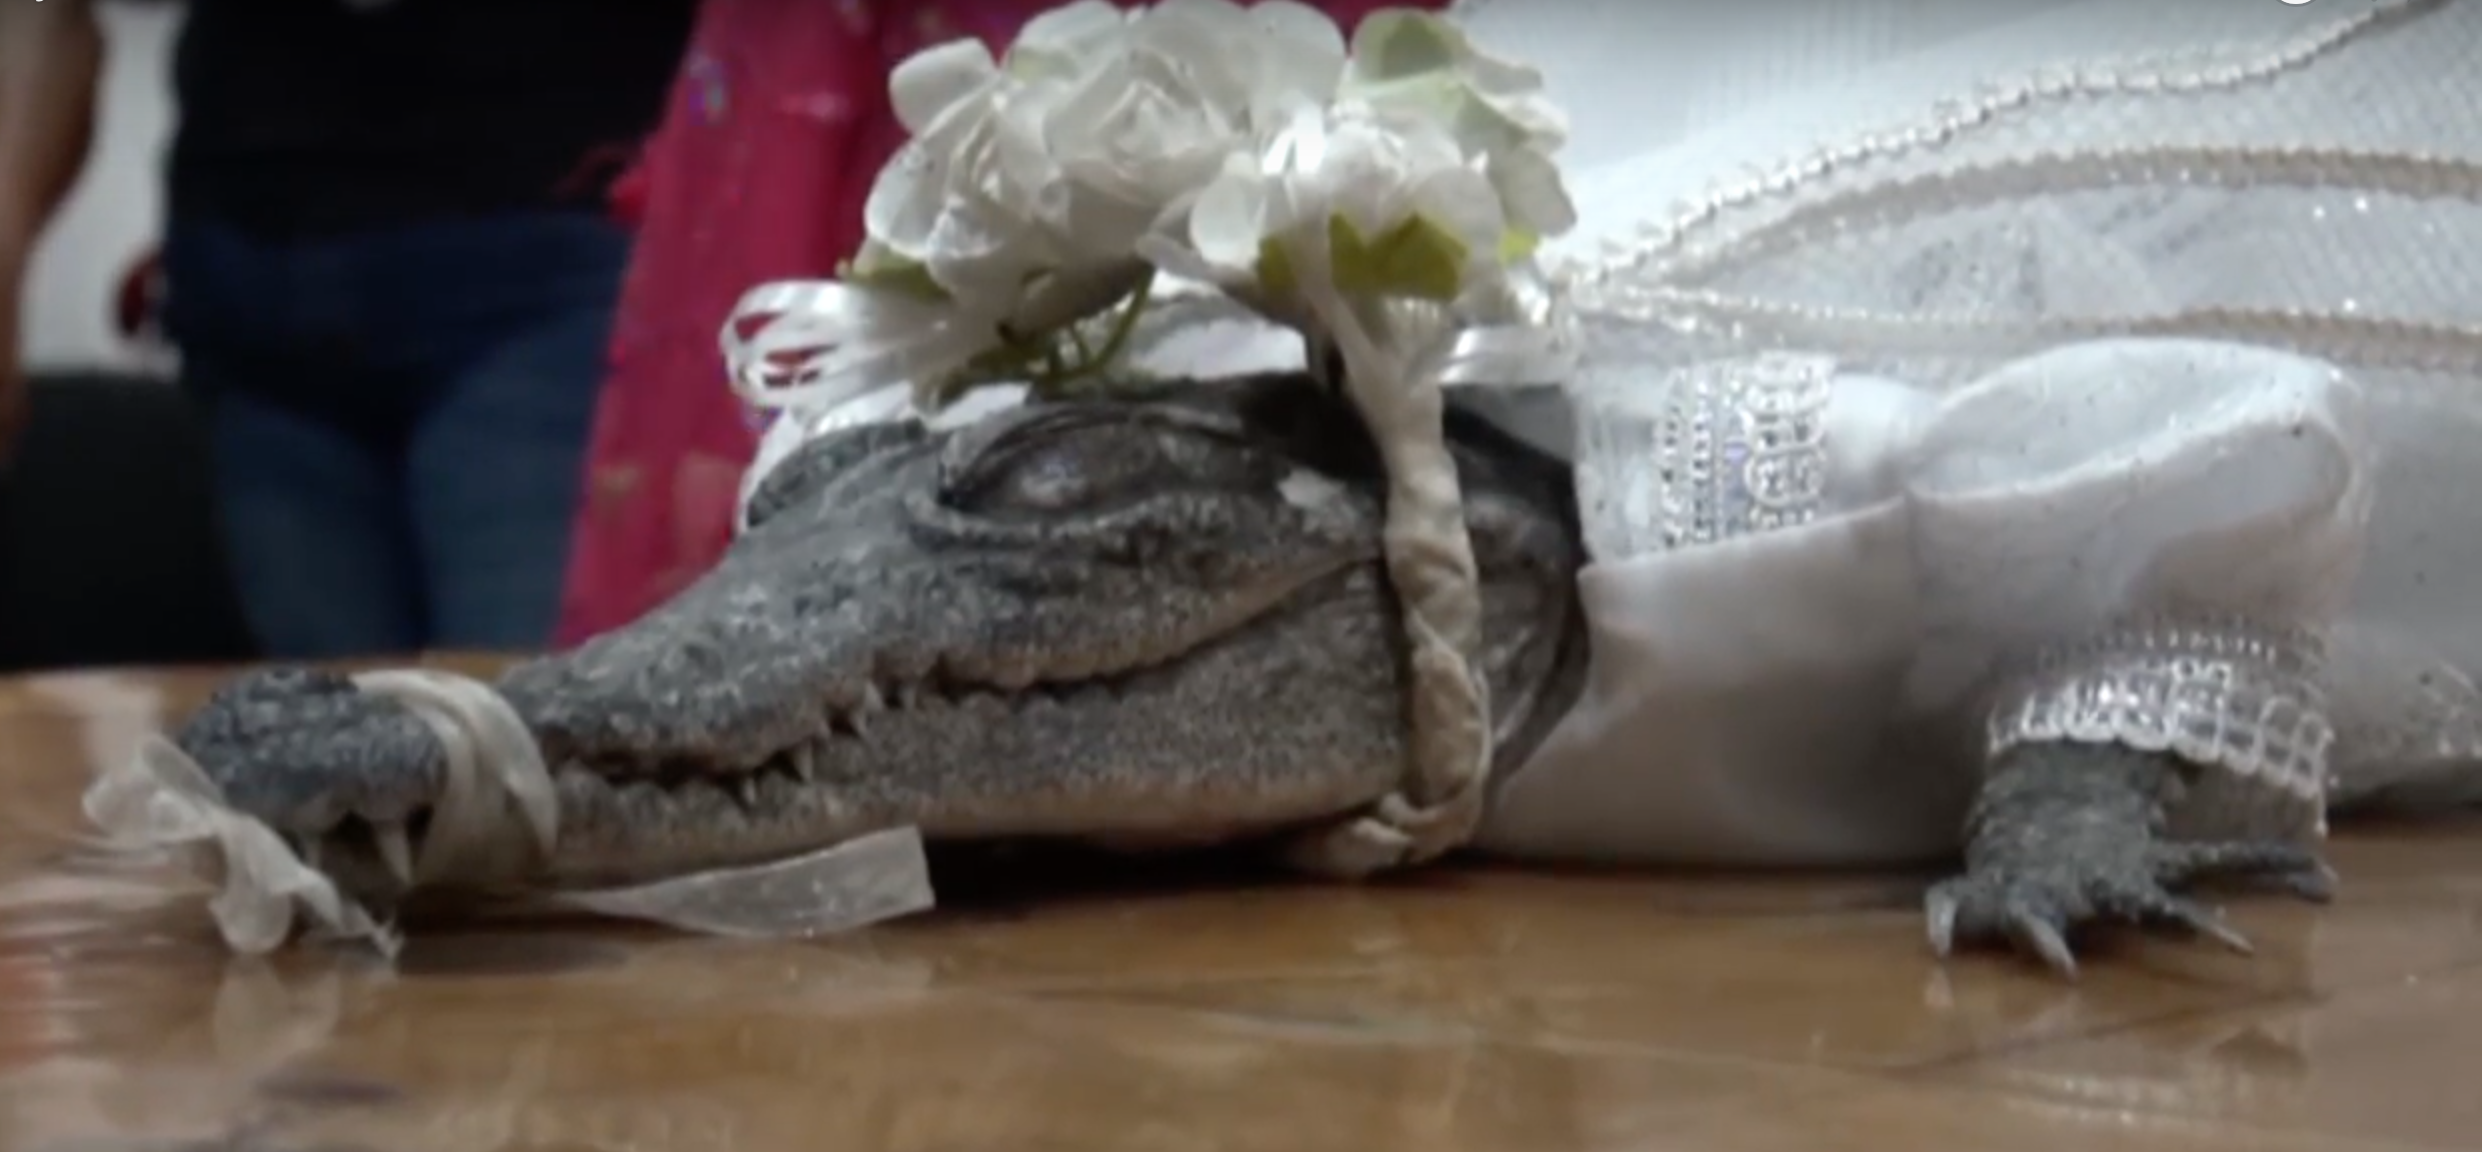 A Mexican mayor married a crocodile because of a 228-year-old tradition